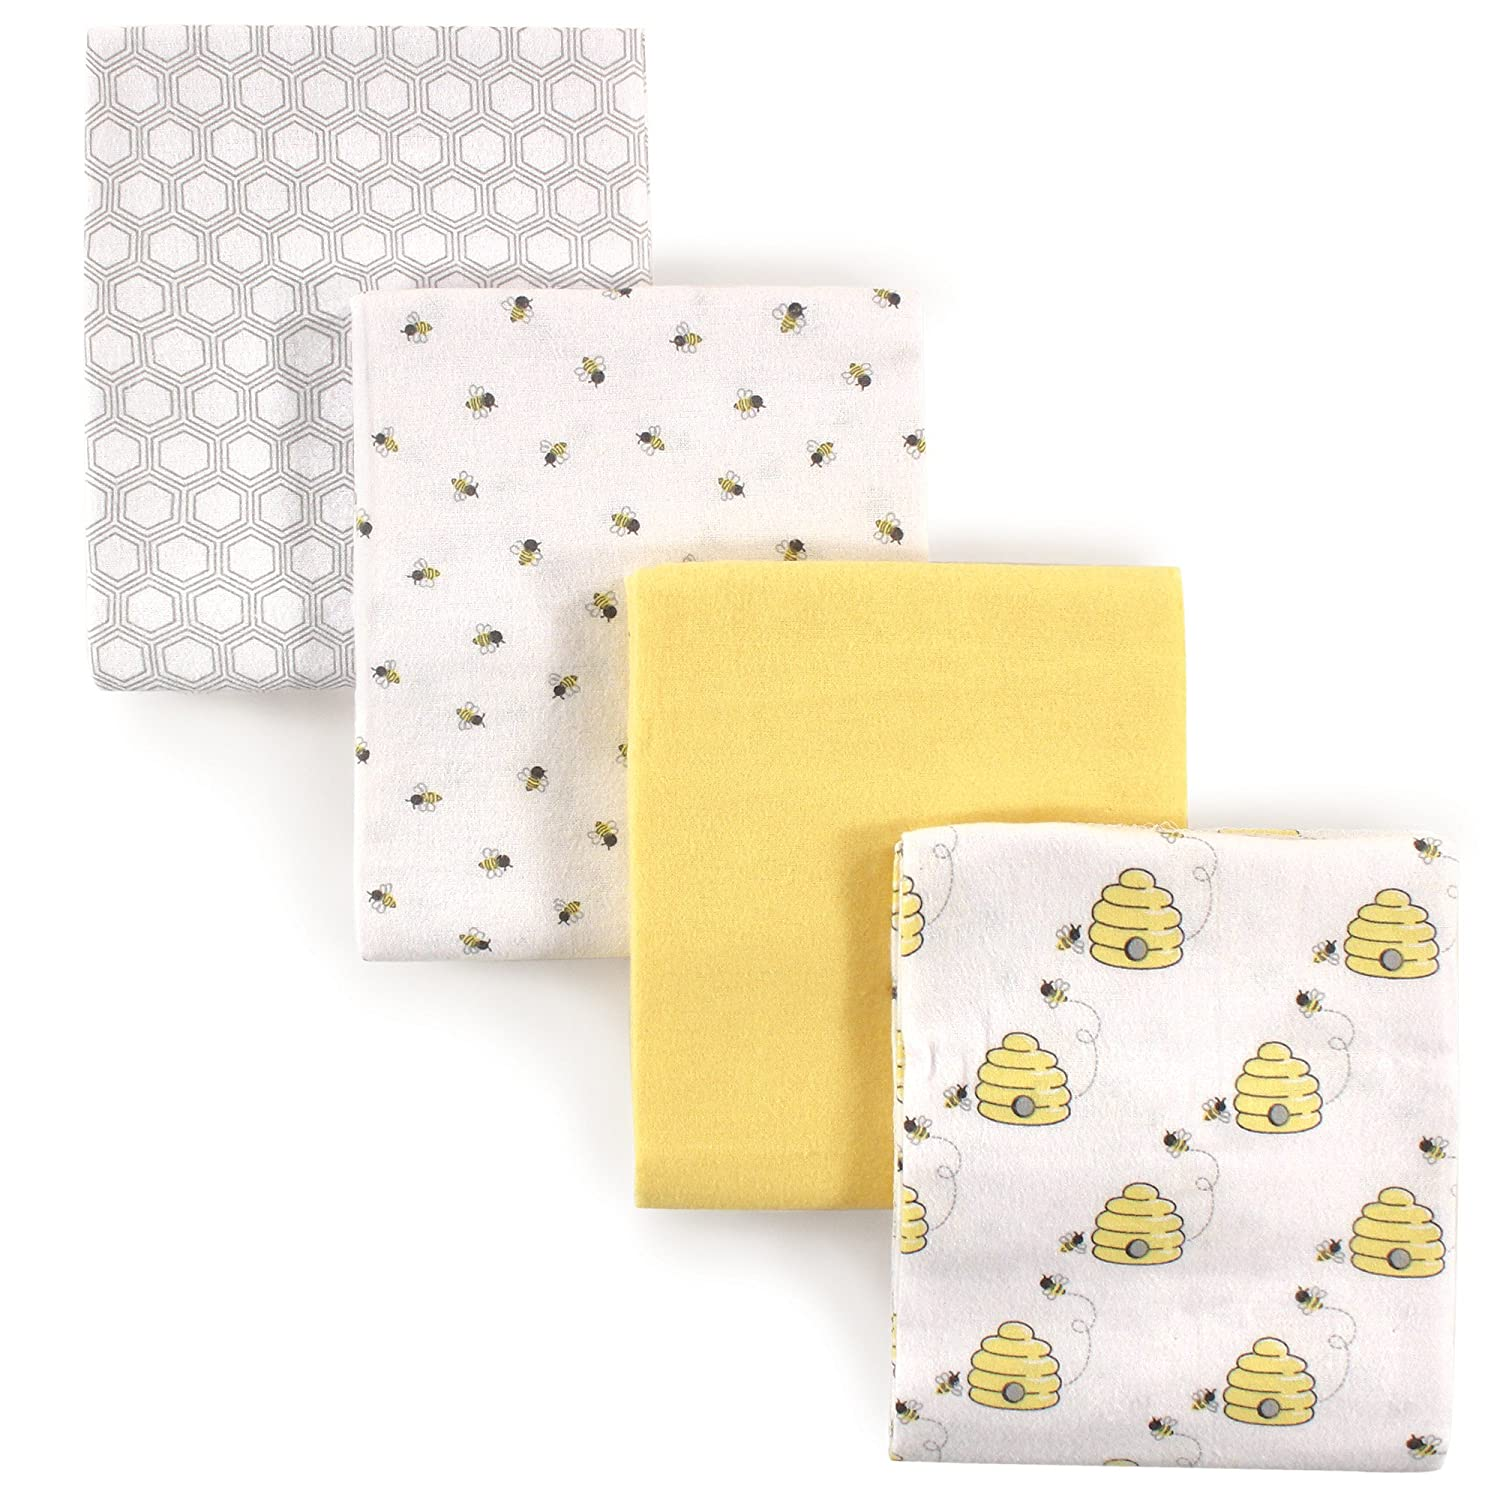 Hudson Baby Unisex Baby Cotton Flannel Receiving Blankets, 4-Pack, Bee, One Size